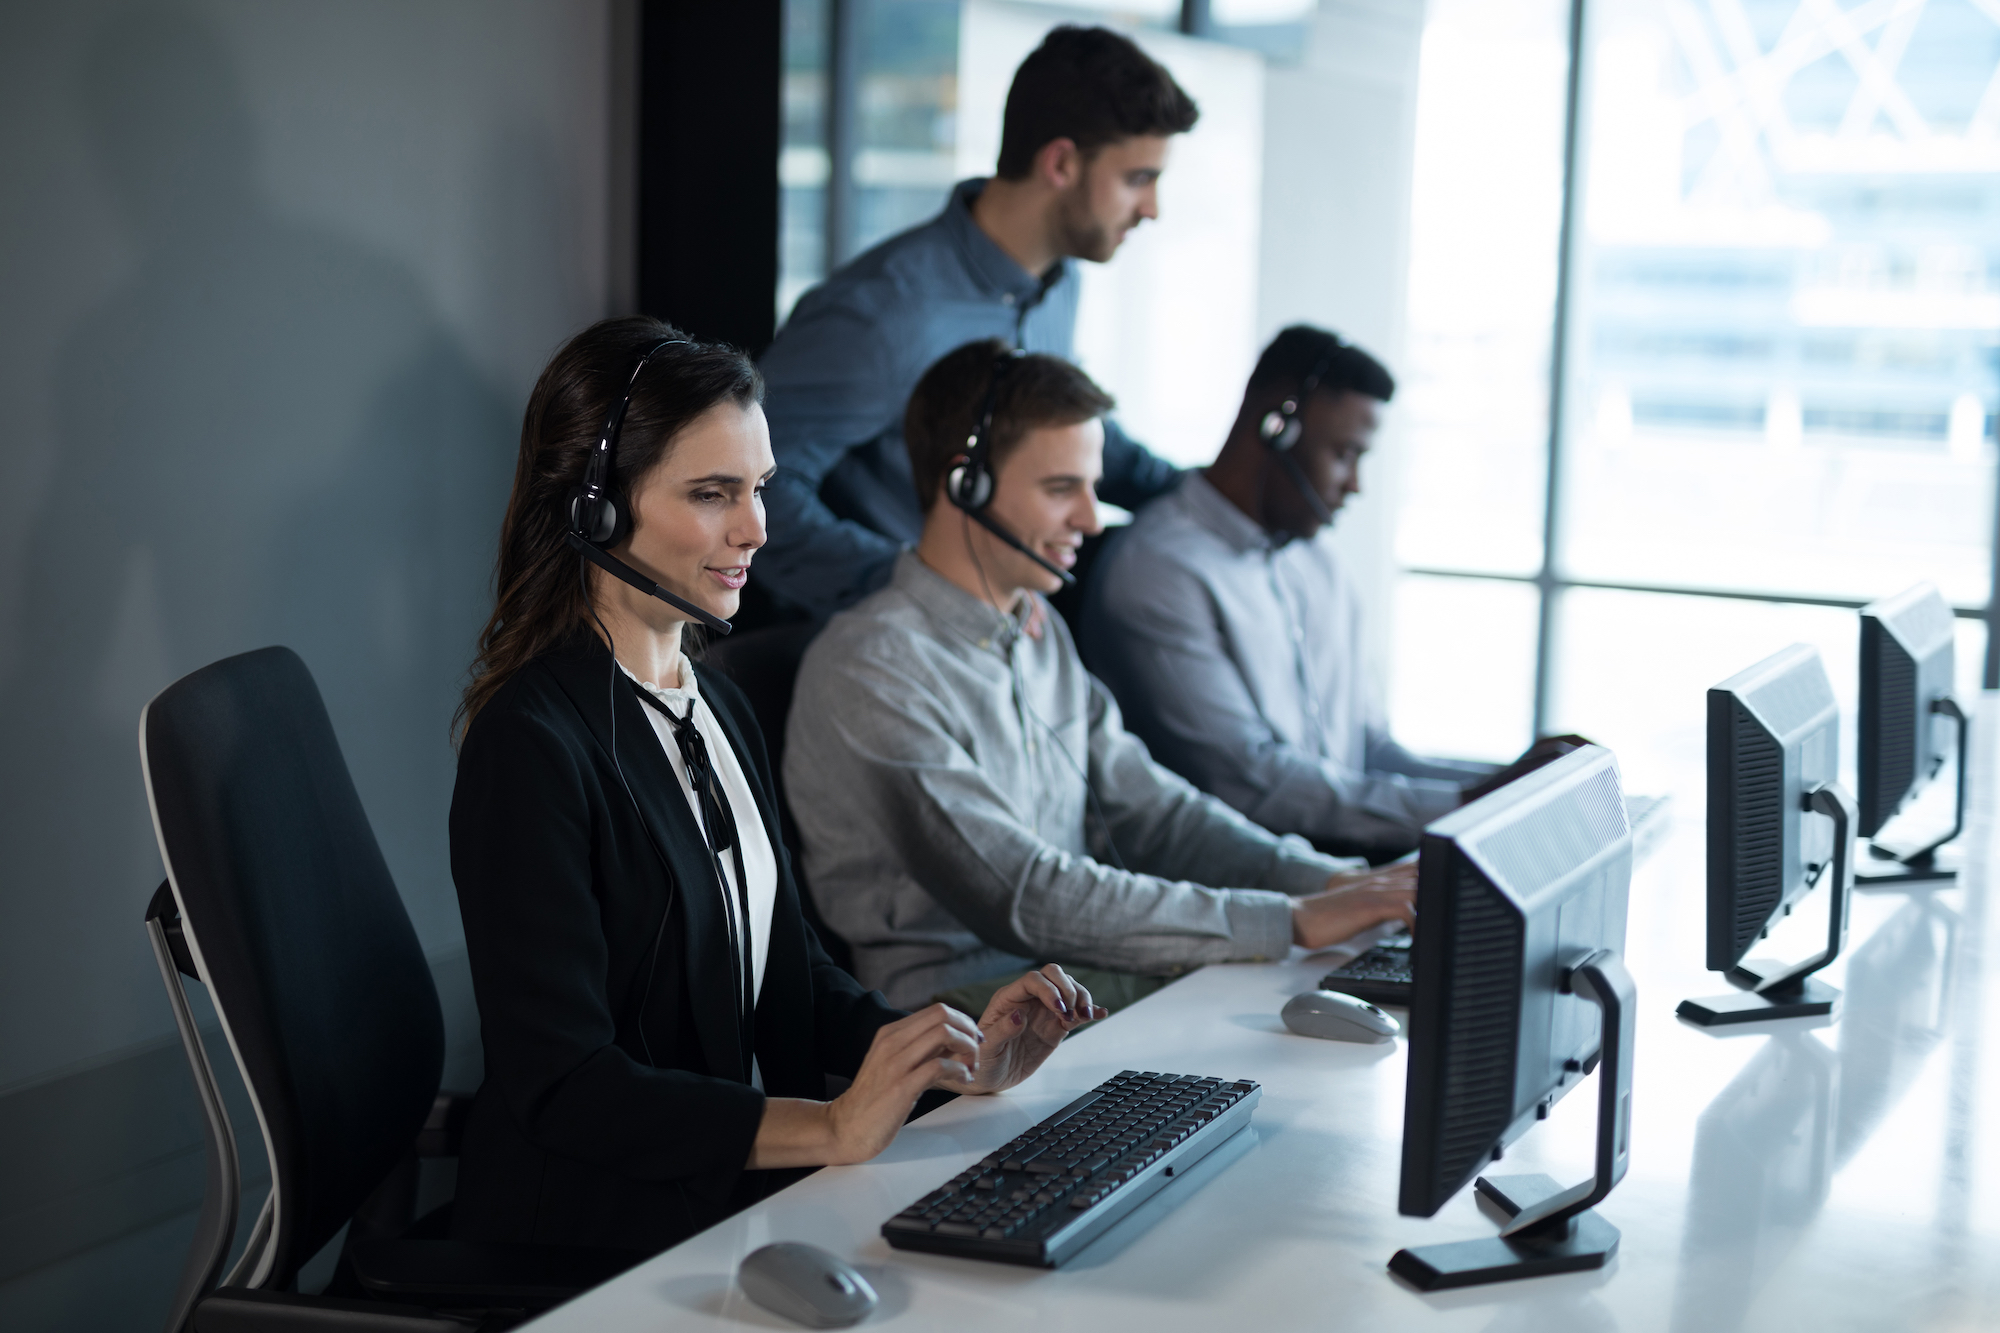 Customer service executive trainer monitoring her team in office